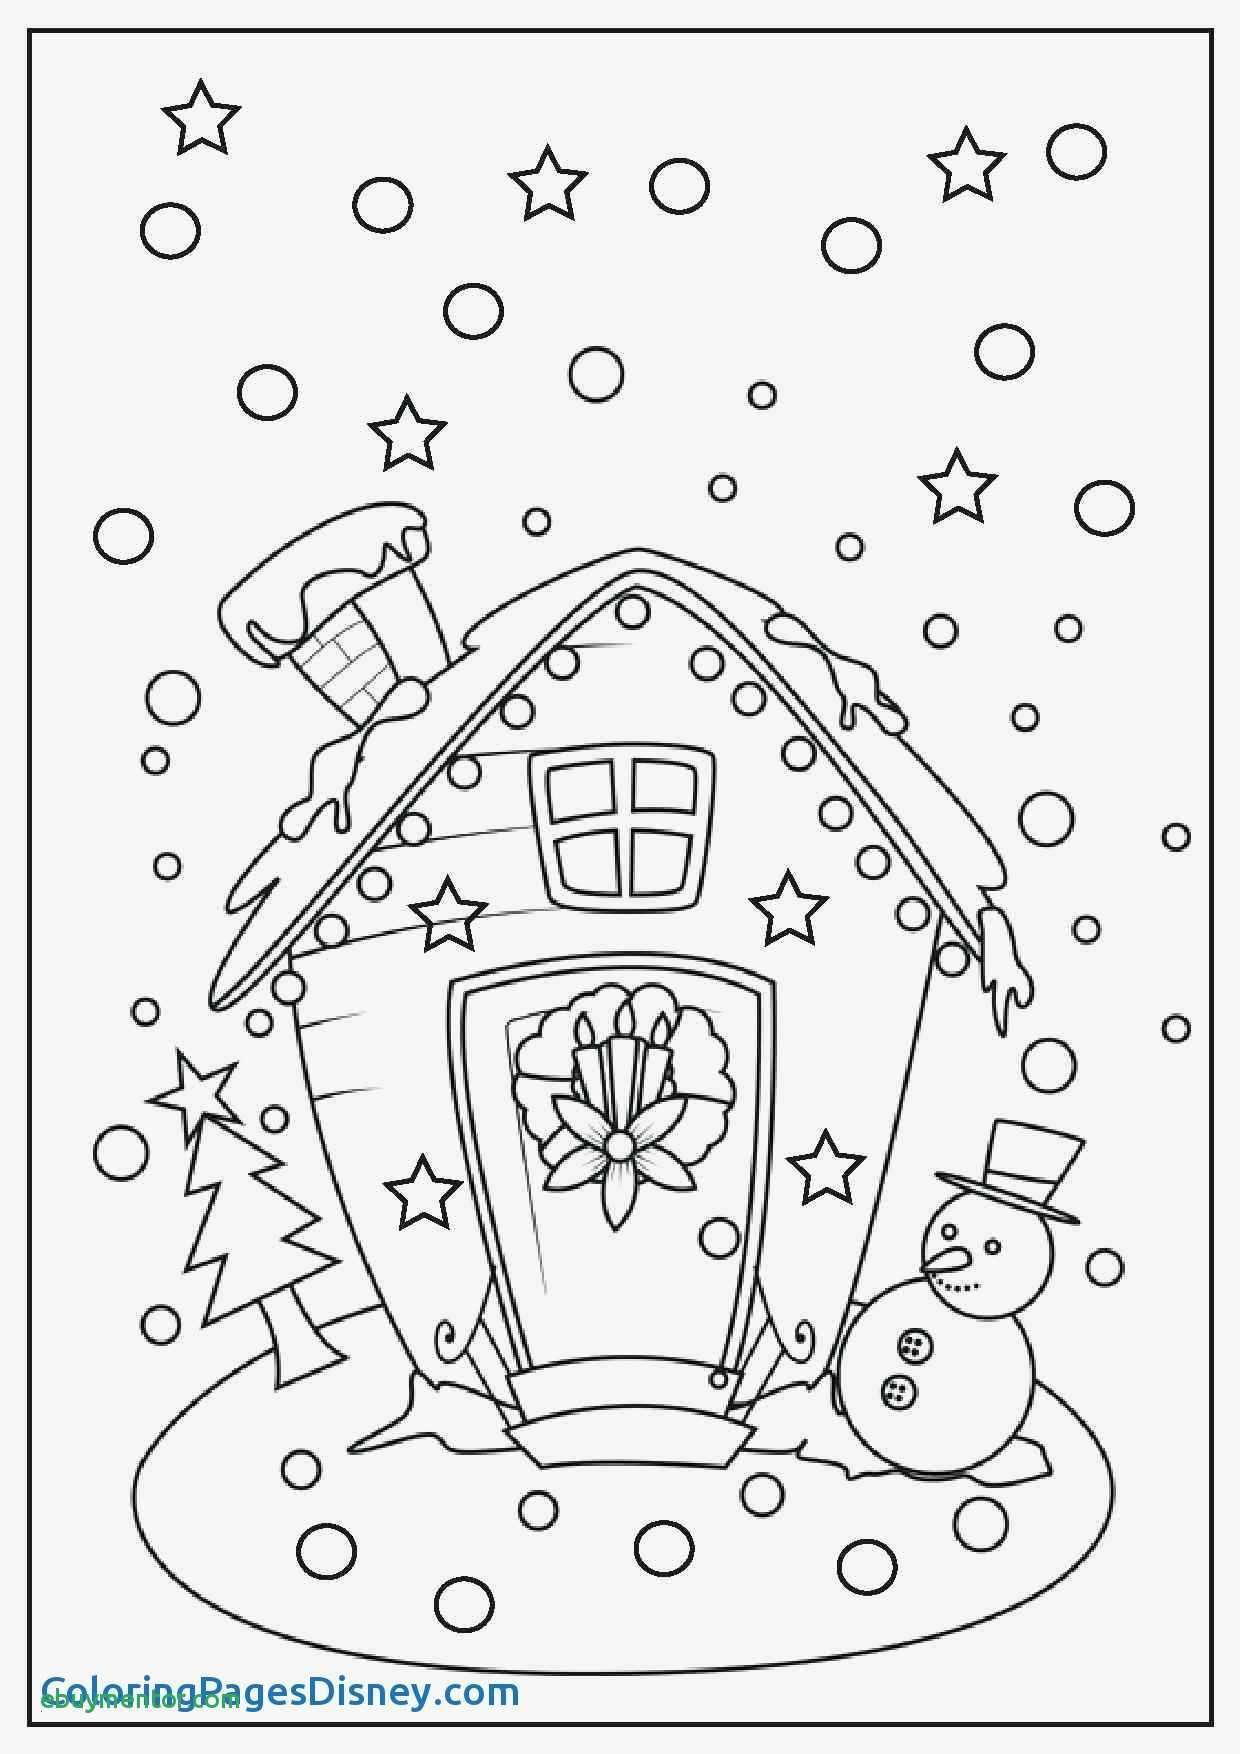 Christmas Coloring Pages That Are Hard With Free Printable Difficult